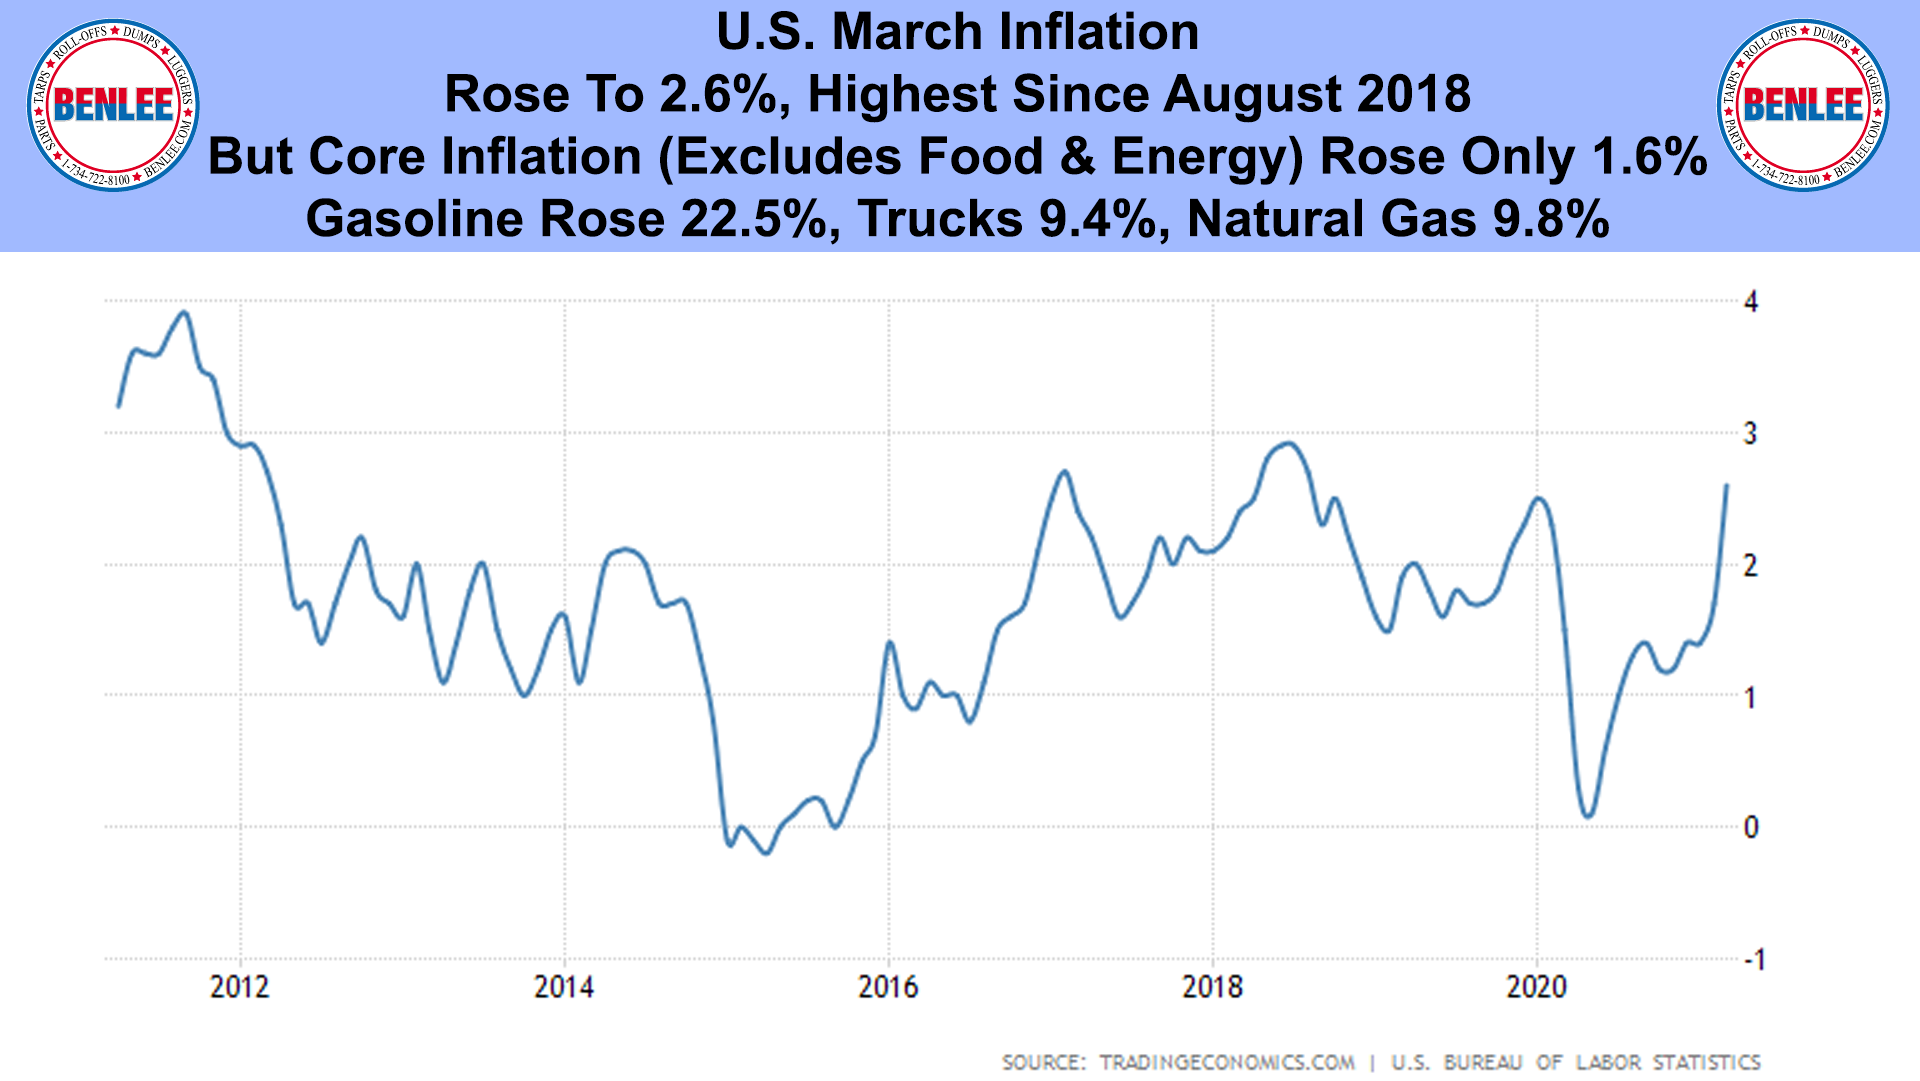 U.S. March Inflation